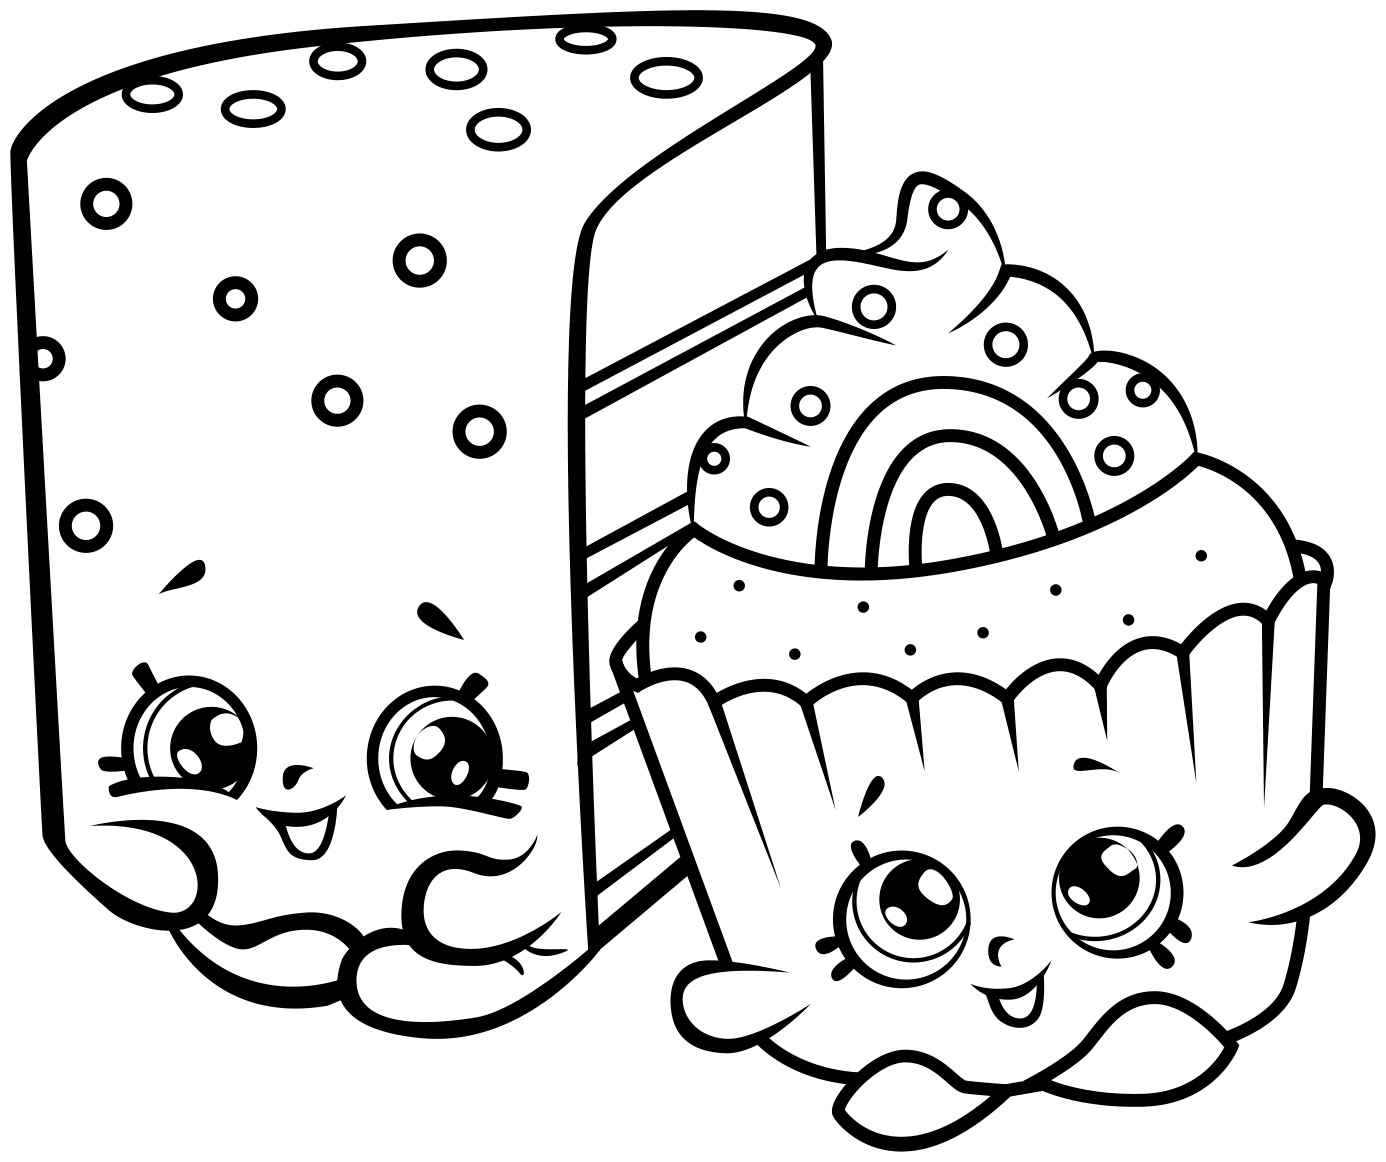 Printable Coloring Pages for Shopkins Free Shopkins Coloring Pages Collection Of Shopkins Coloring Pages 71 Collection